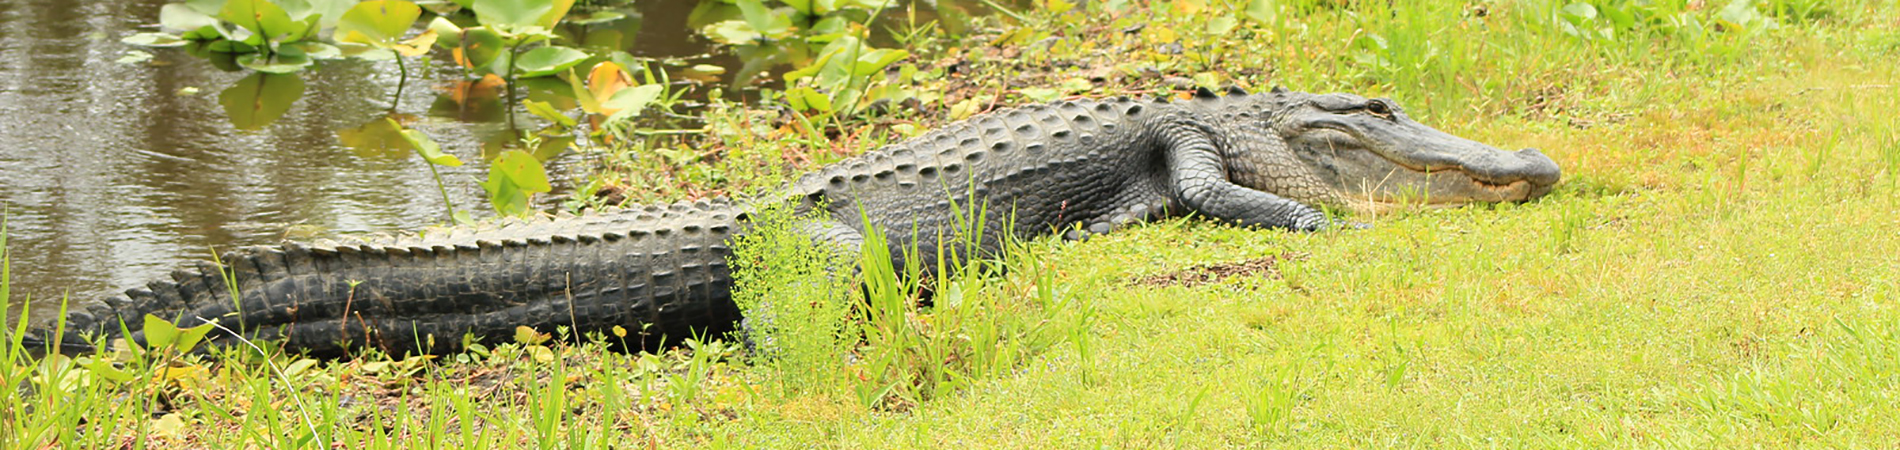 American Alligator on Bank